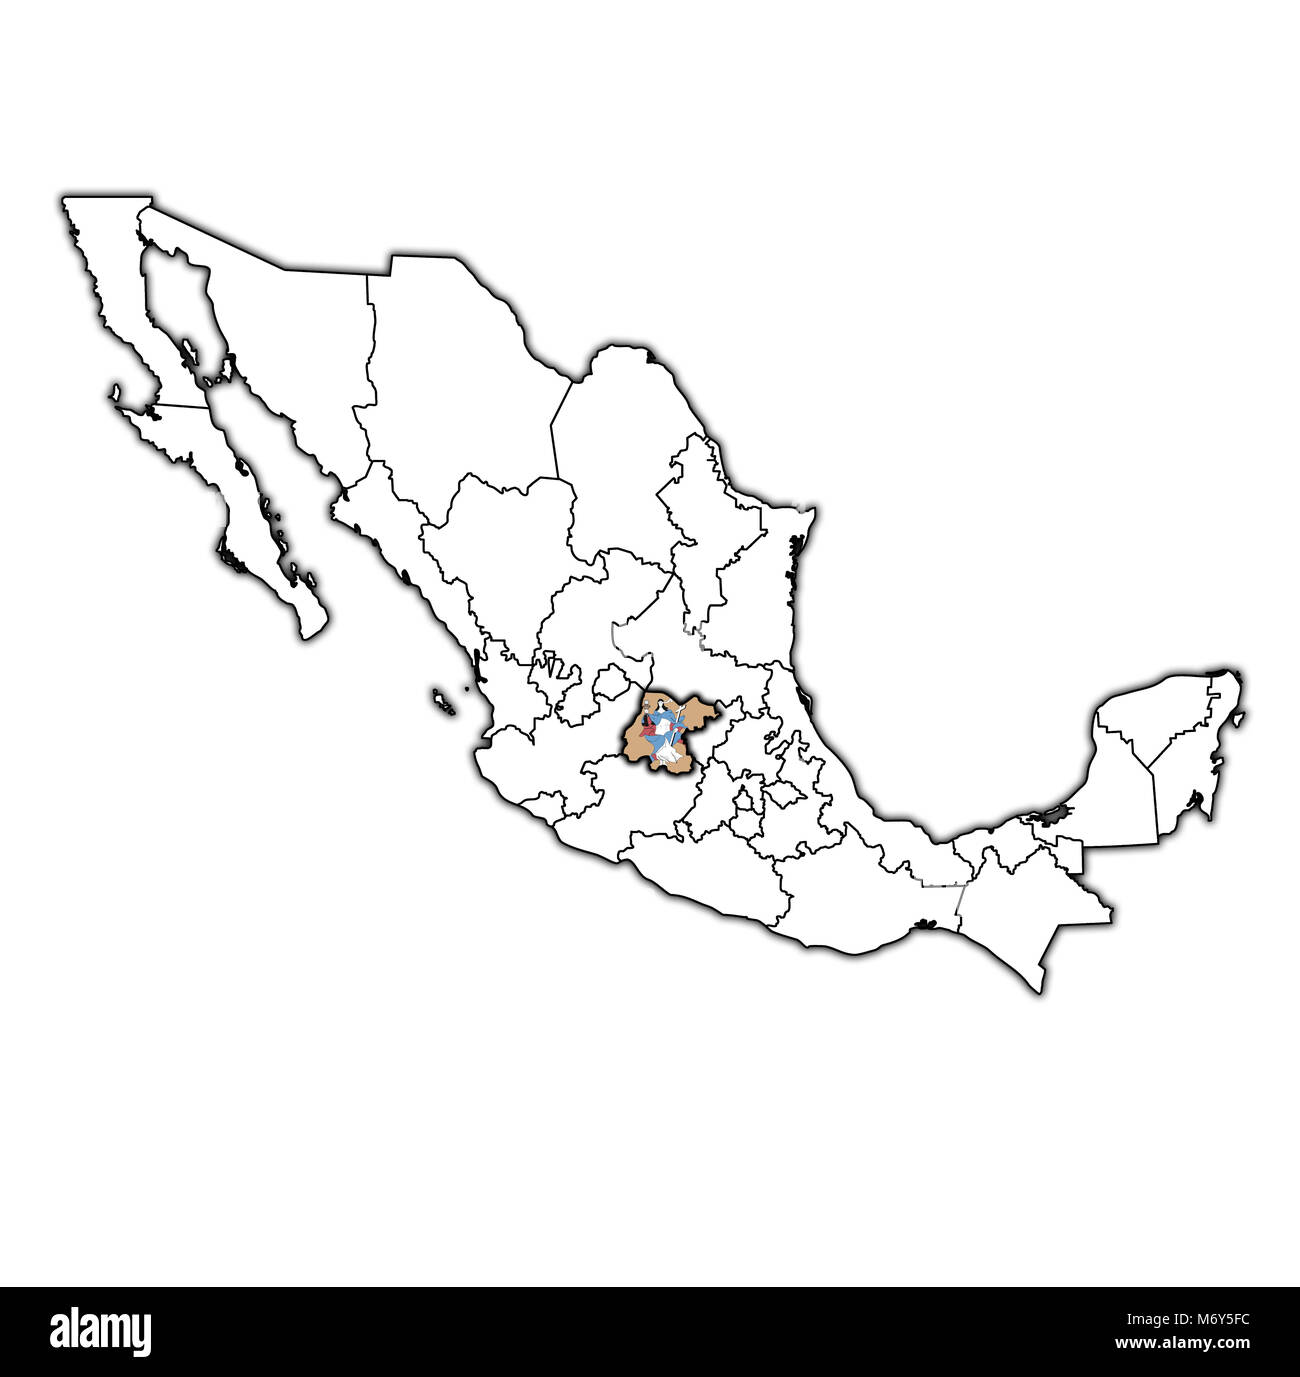 emblem of guanajuato state on map with administrative divisions and borders of Mexico - Stock Image